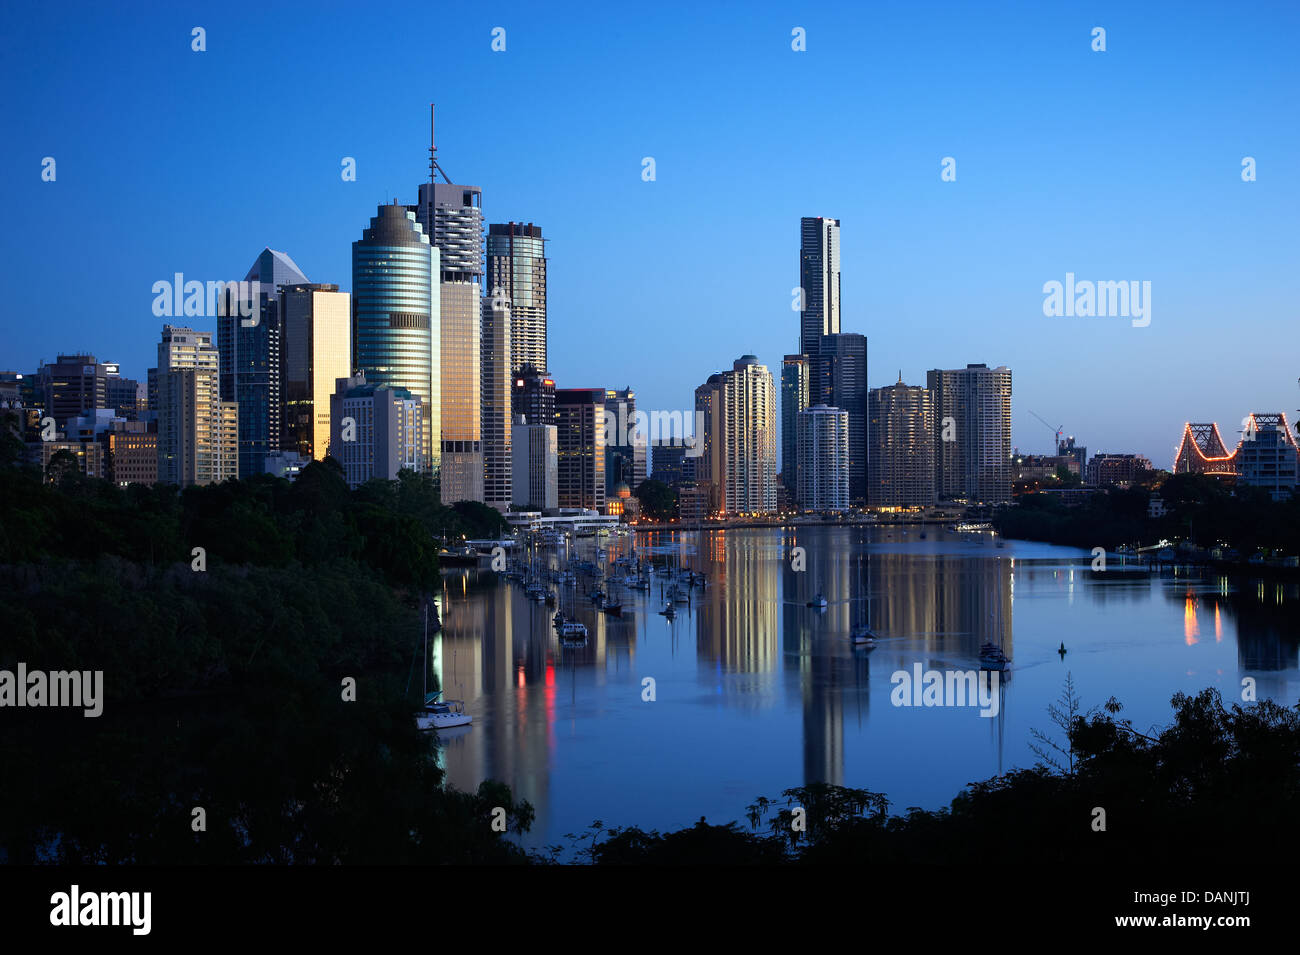 Brisbane central business district Queensland Australia - Stock Image